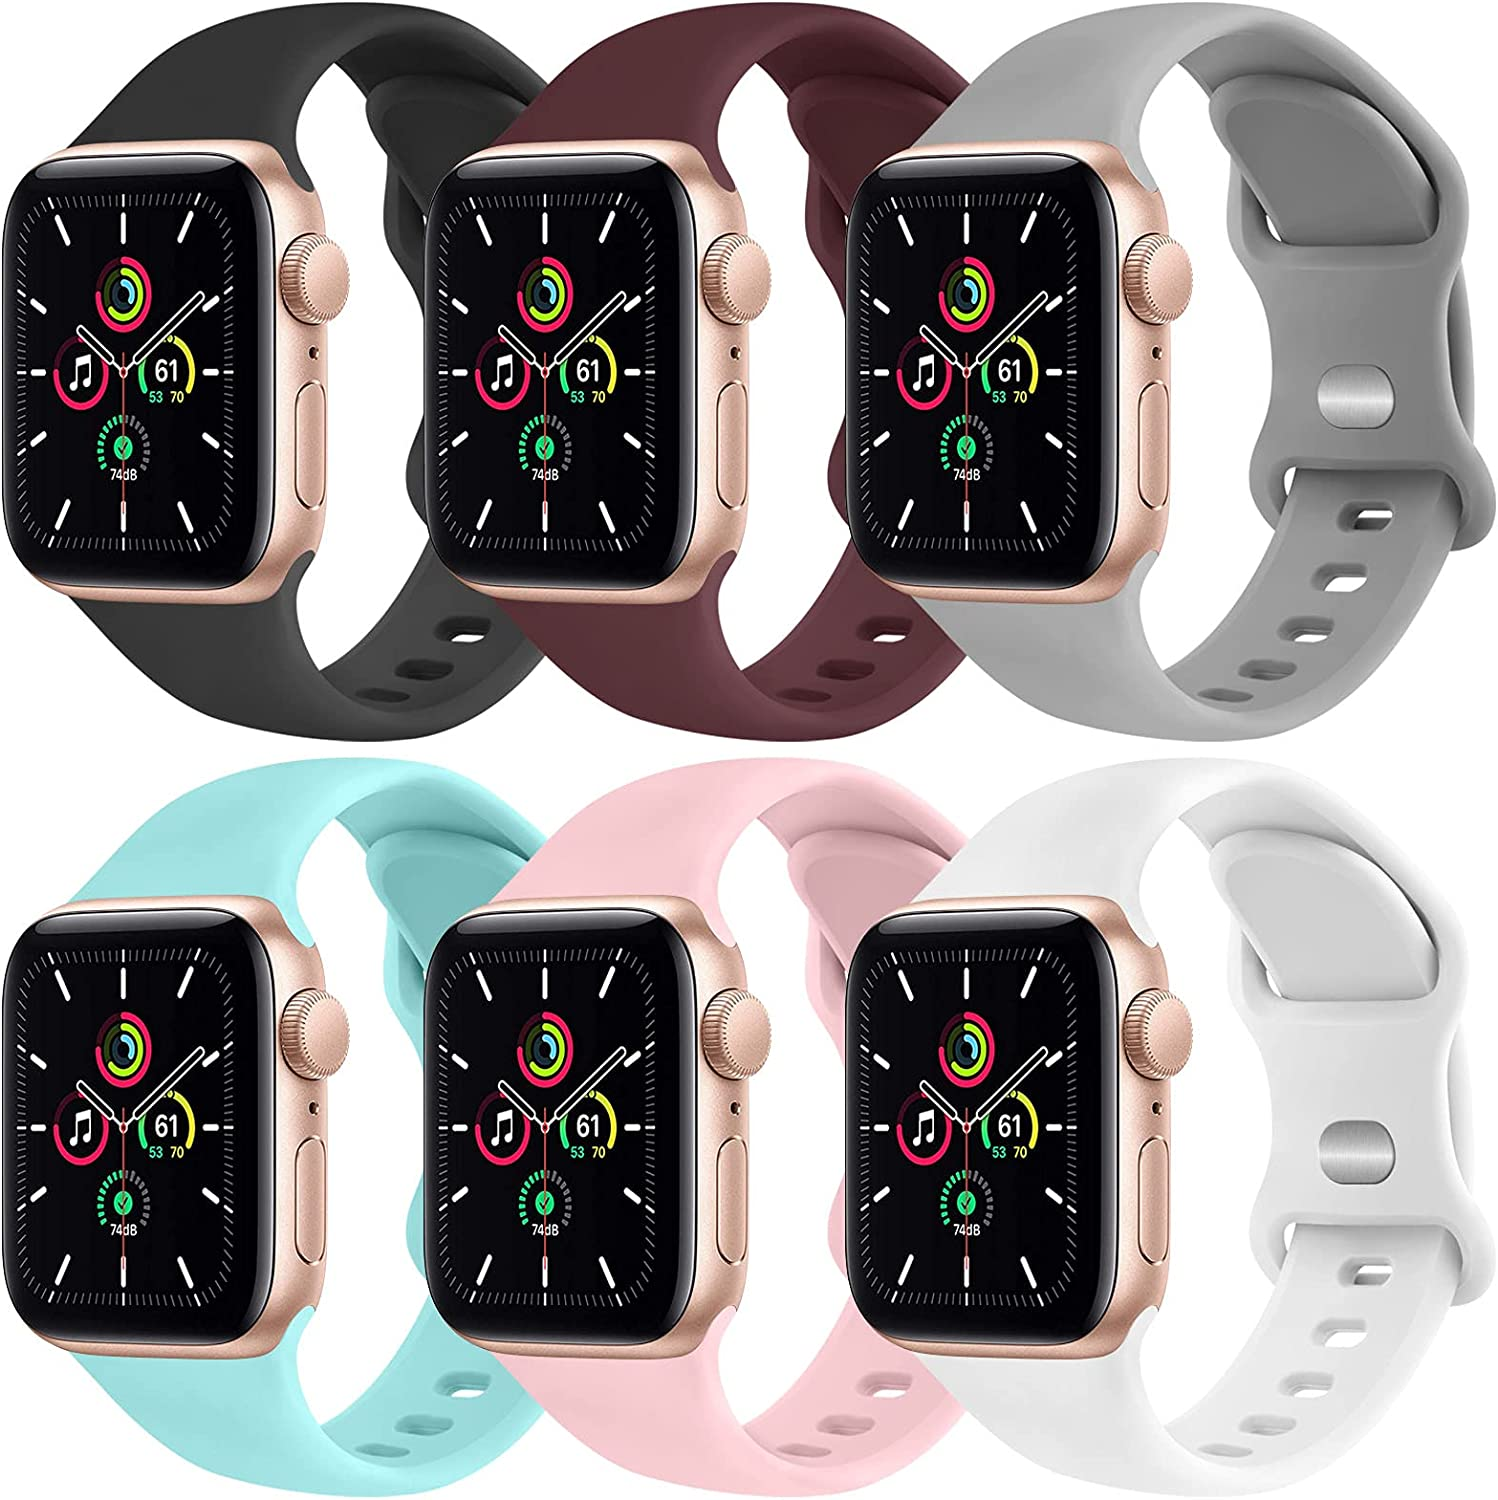 [6 Pack] Yisica Silicone Bands Compatible with Apple Watch Band 38mm 40mm for Men Women, Sport Wristbands for iWatch Series SE/6/5/4/3/2/1